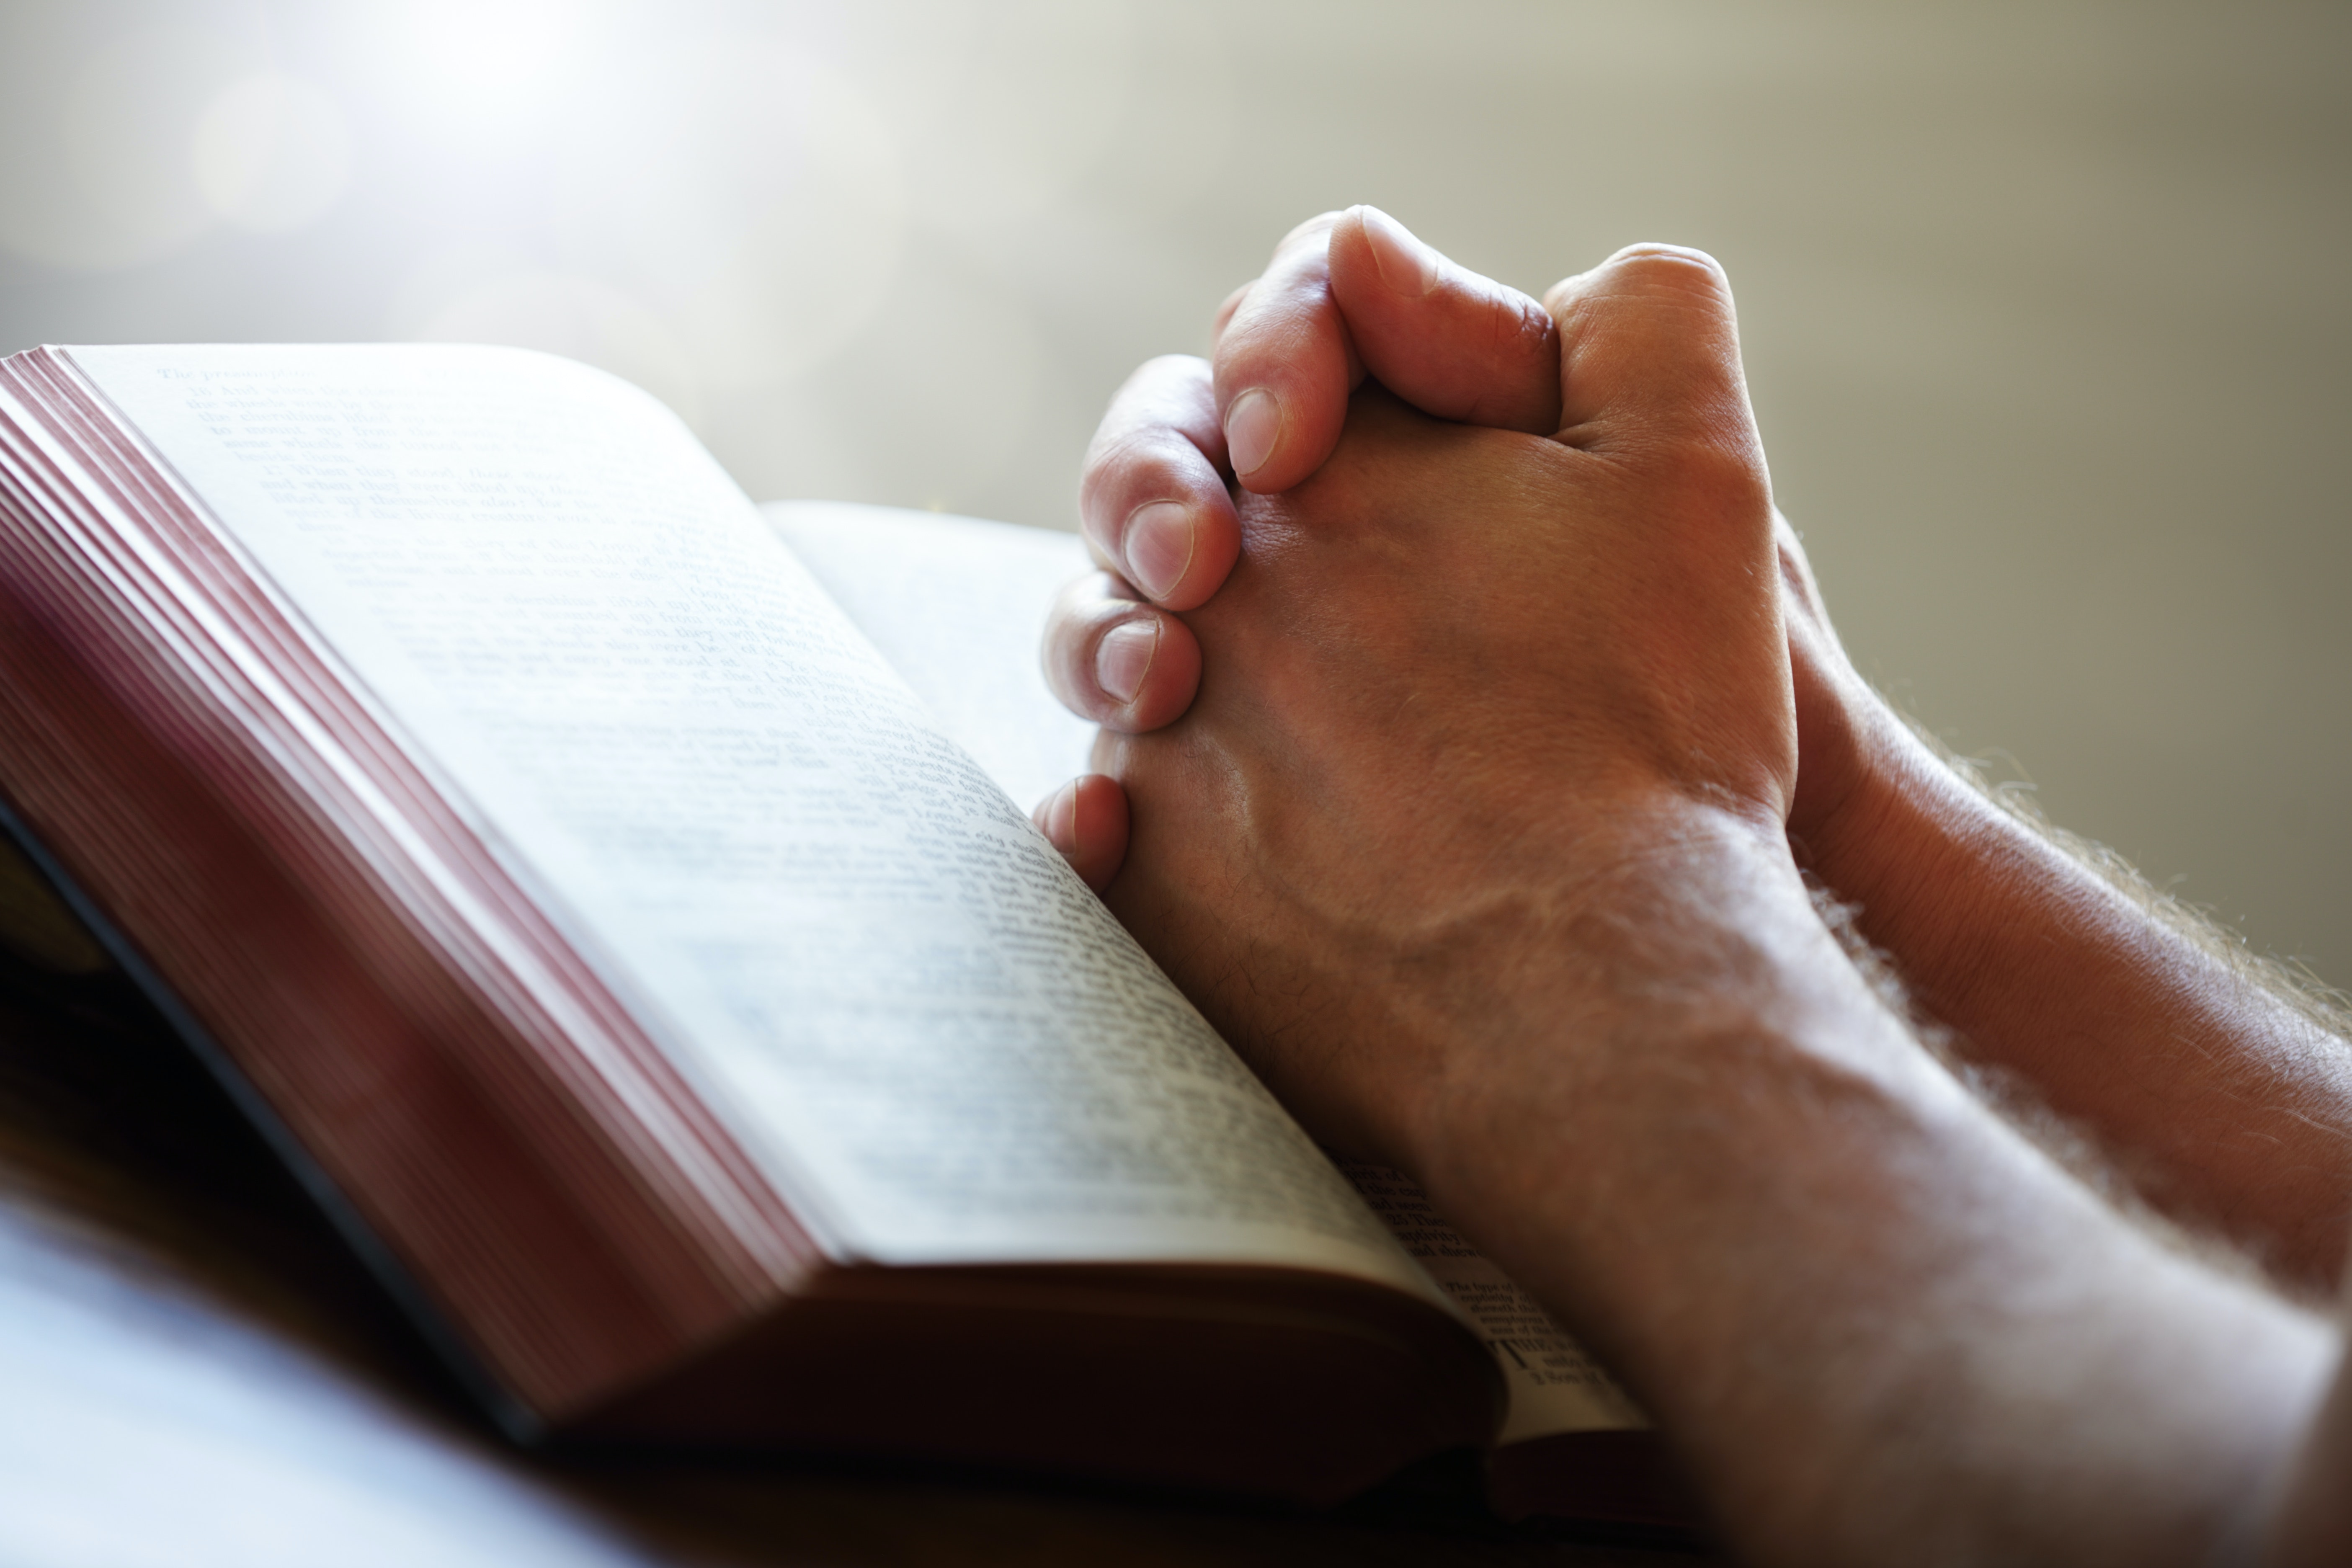 Why Australians' religious freedom is worth protecting